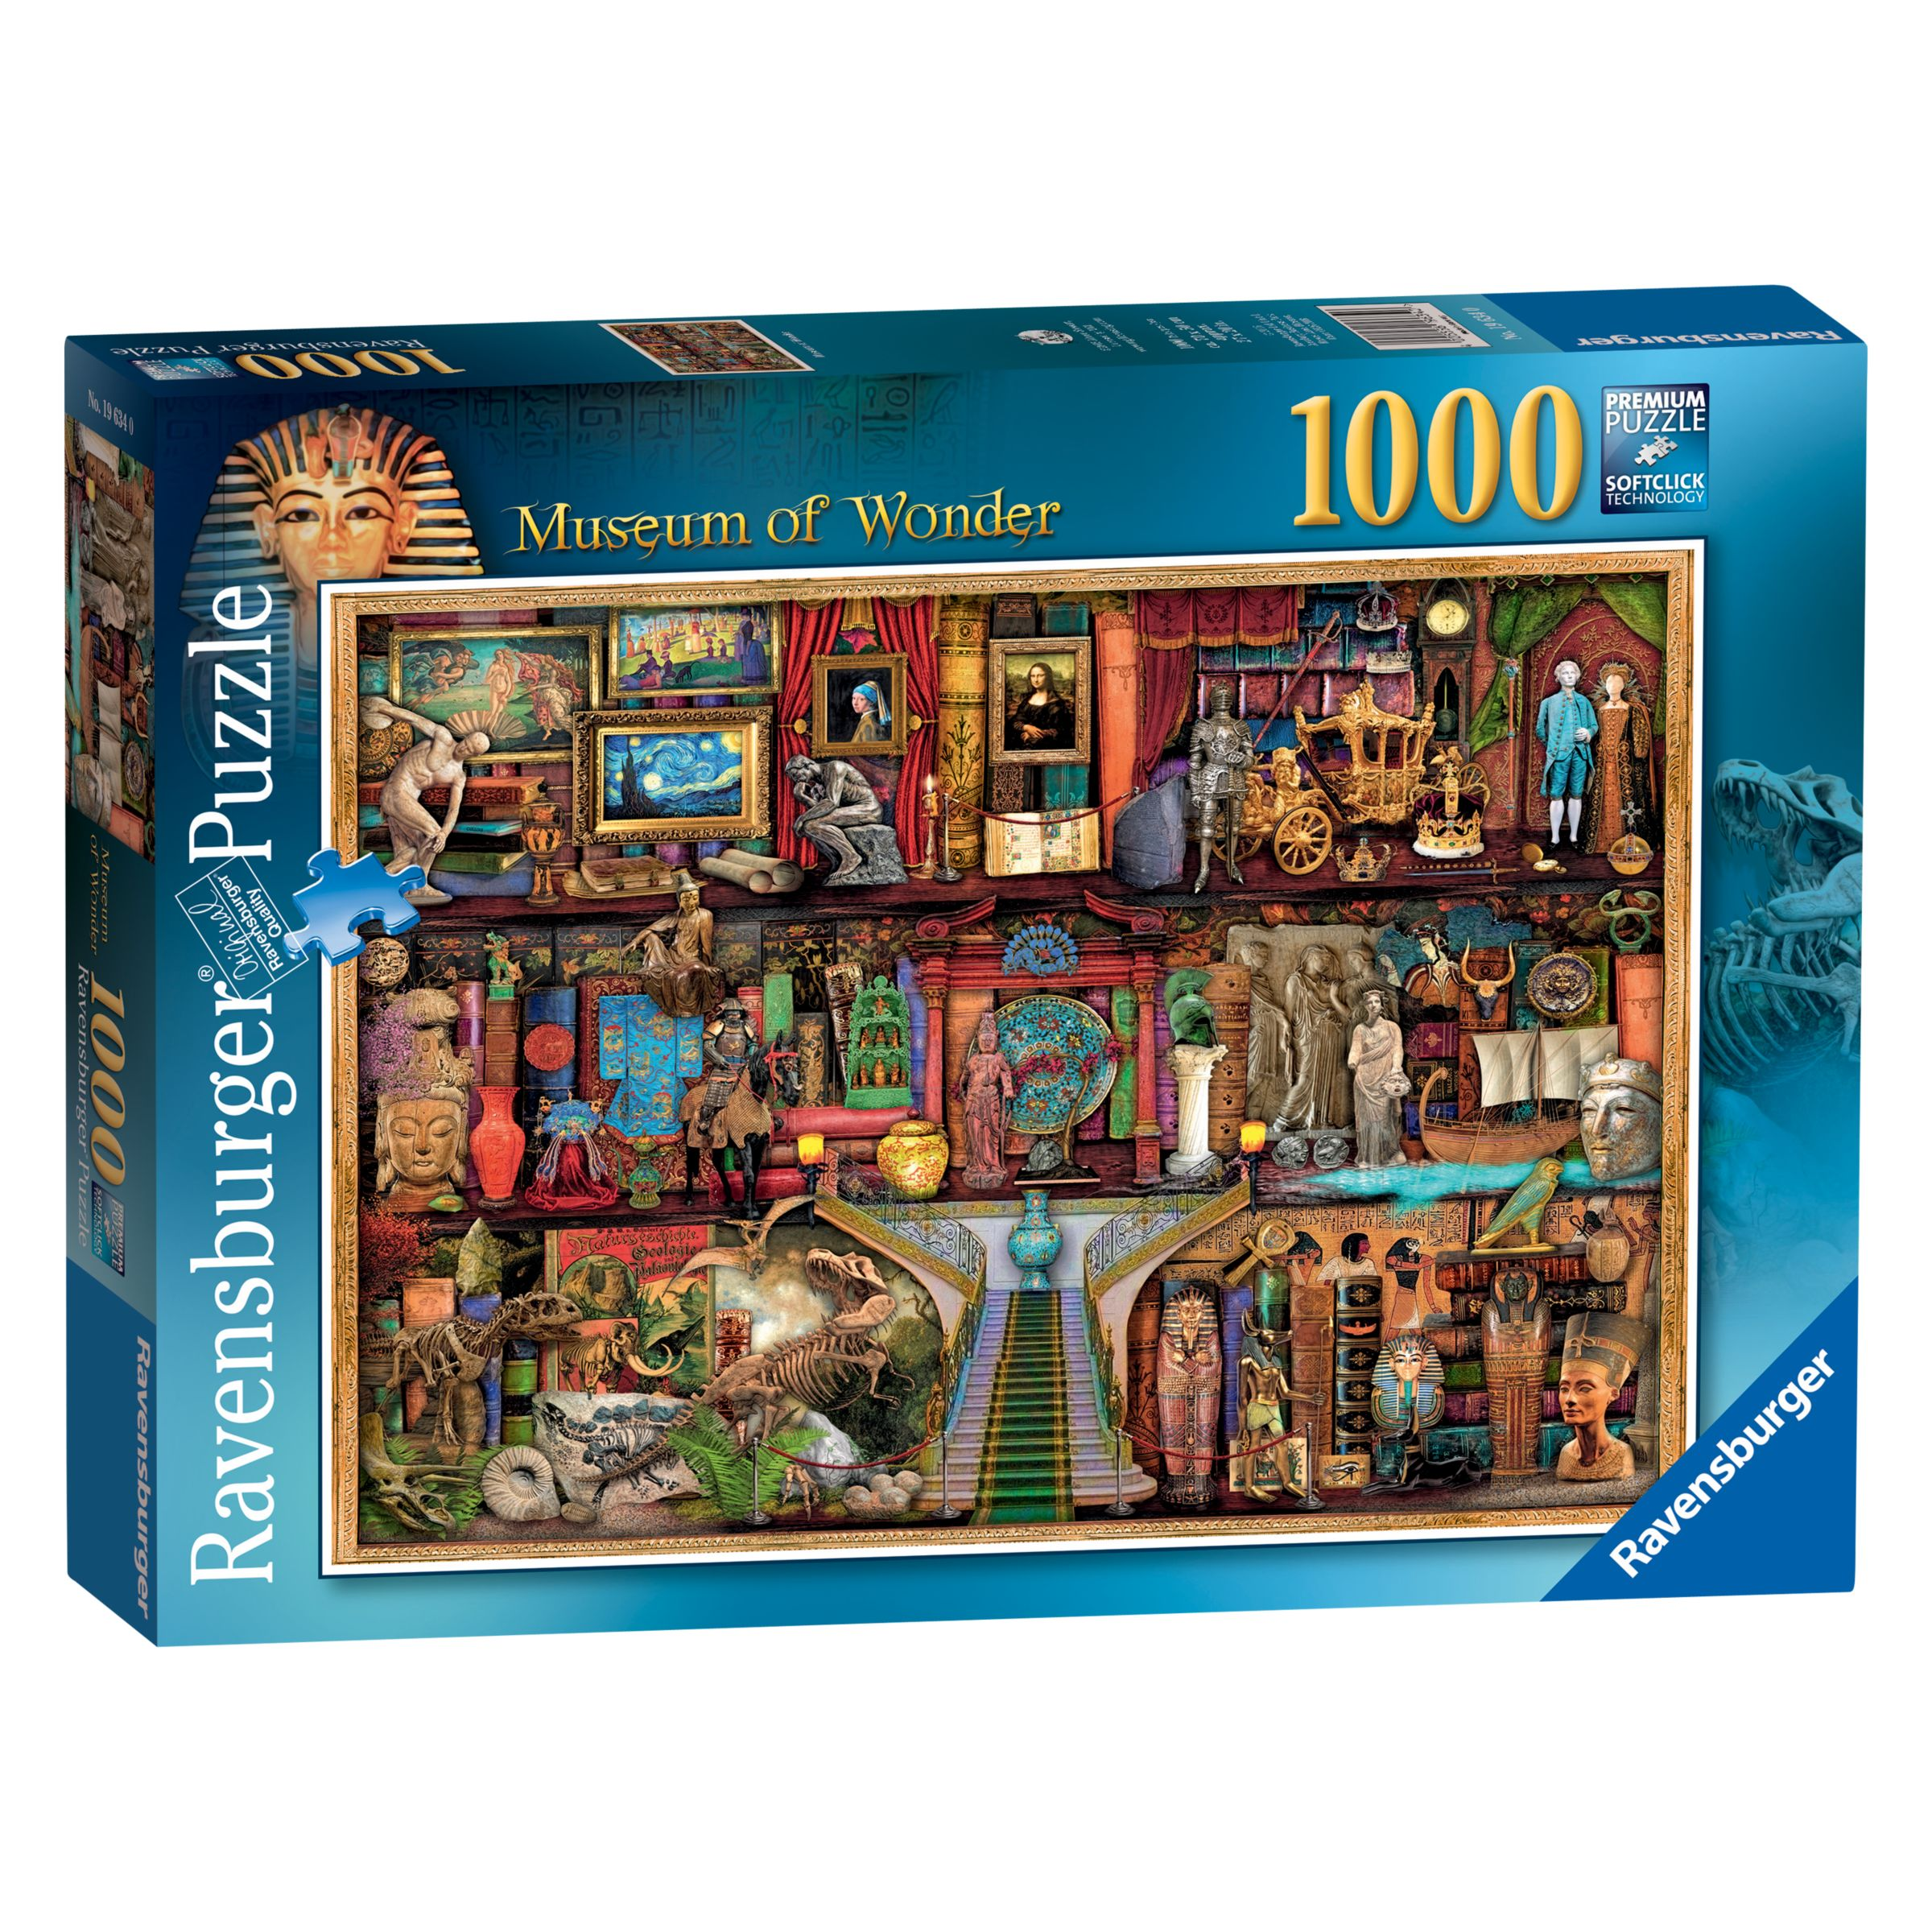 Ravensburger Ravensburger Museum of Wonder Jigsaw Puzzle, 1000 Pieces